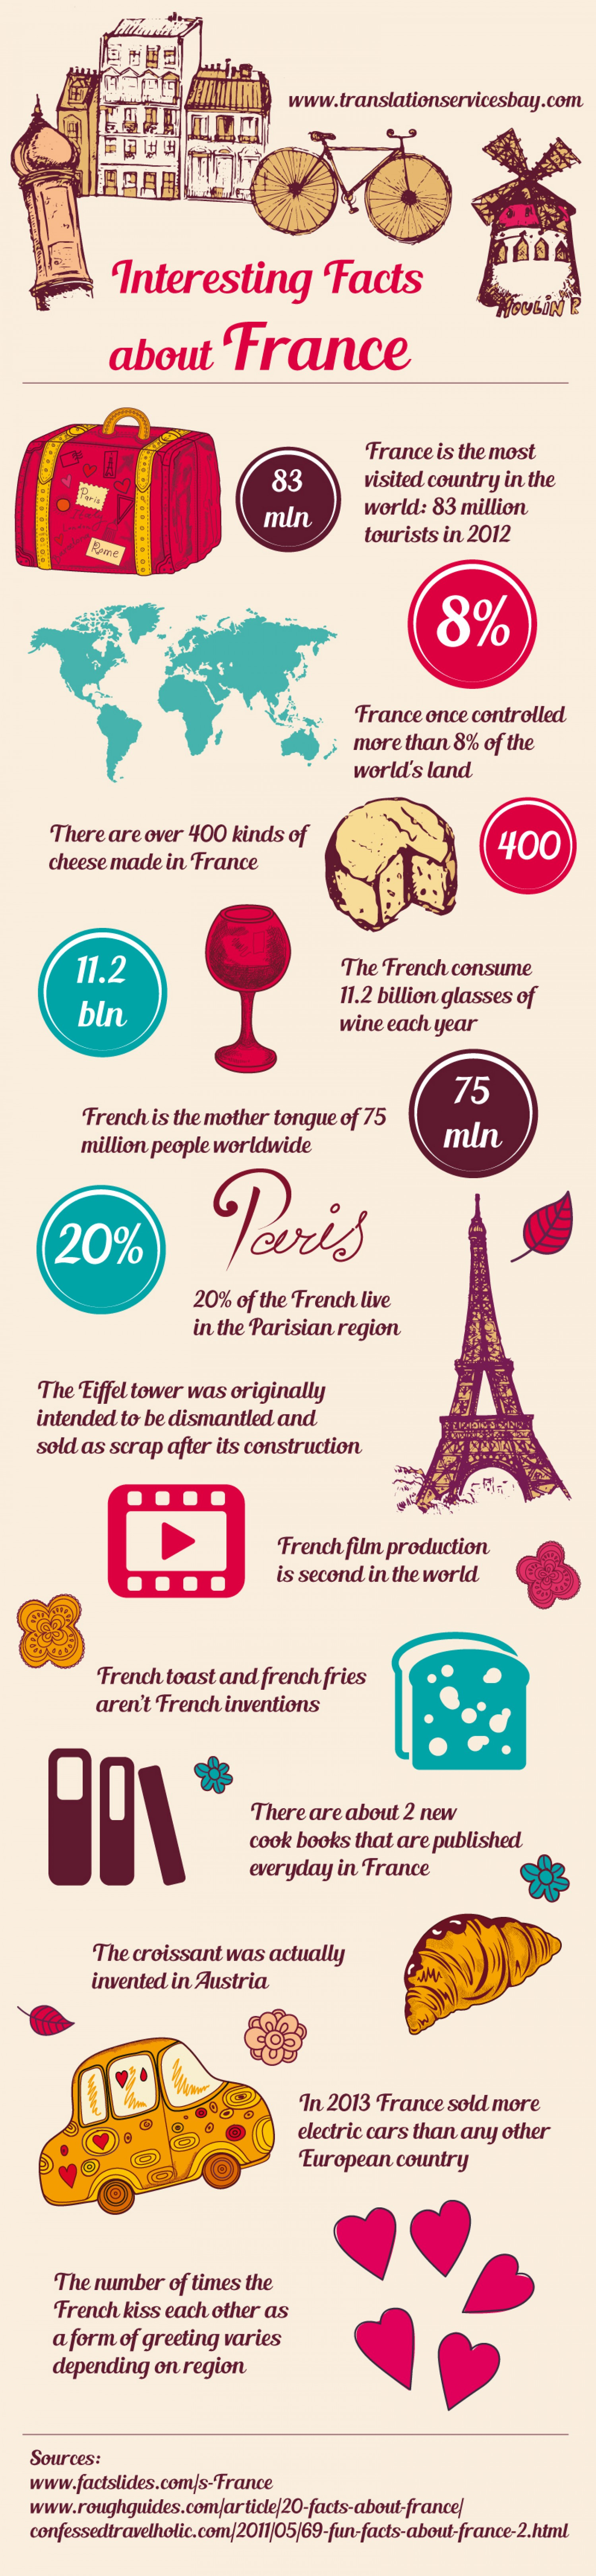 Interesting Facts About France Infographic